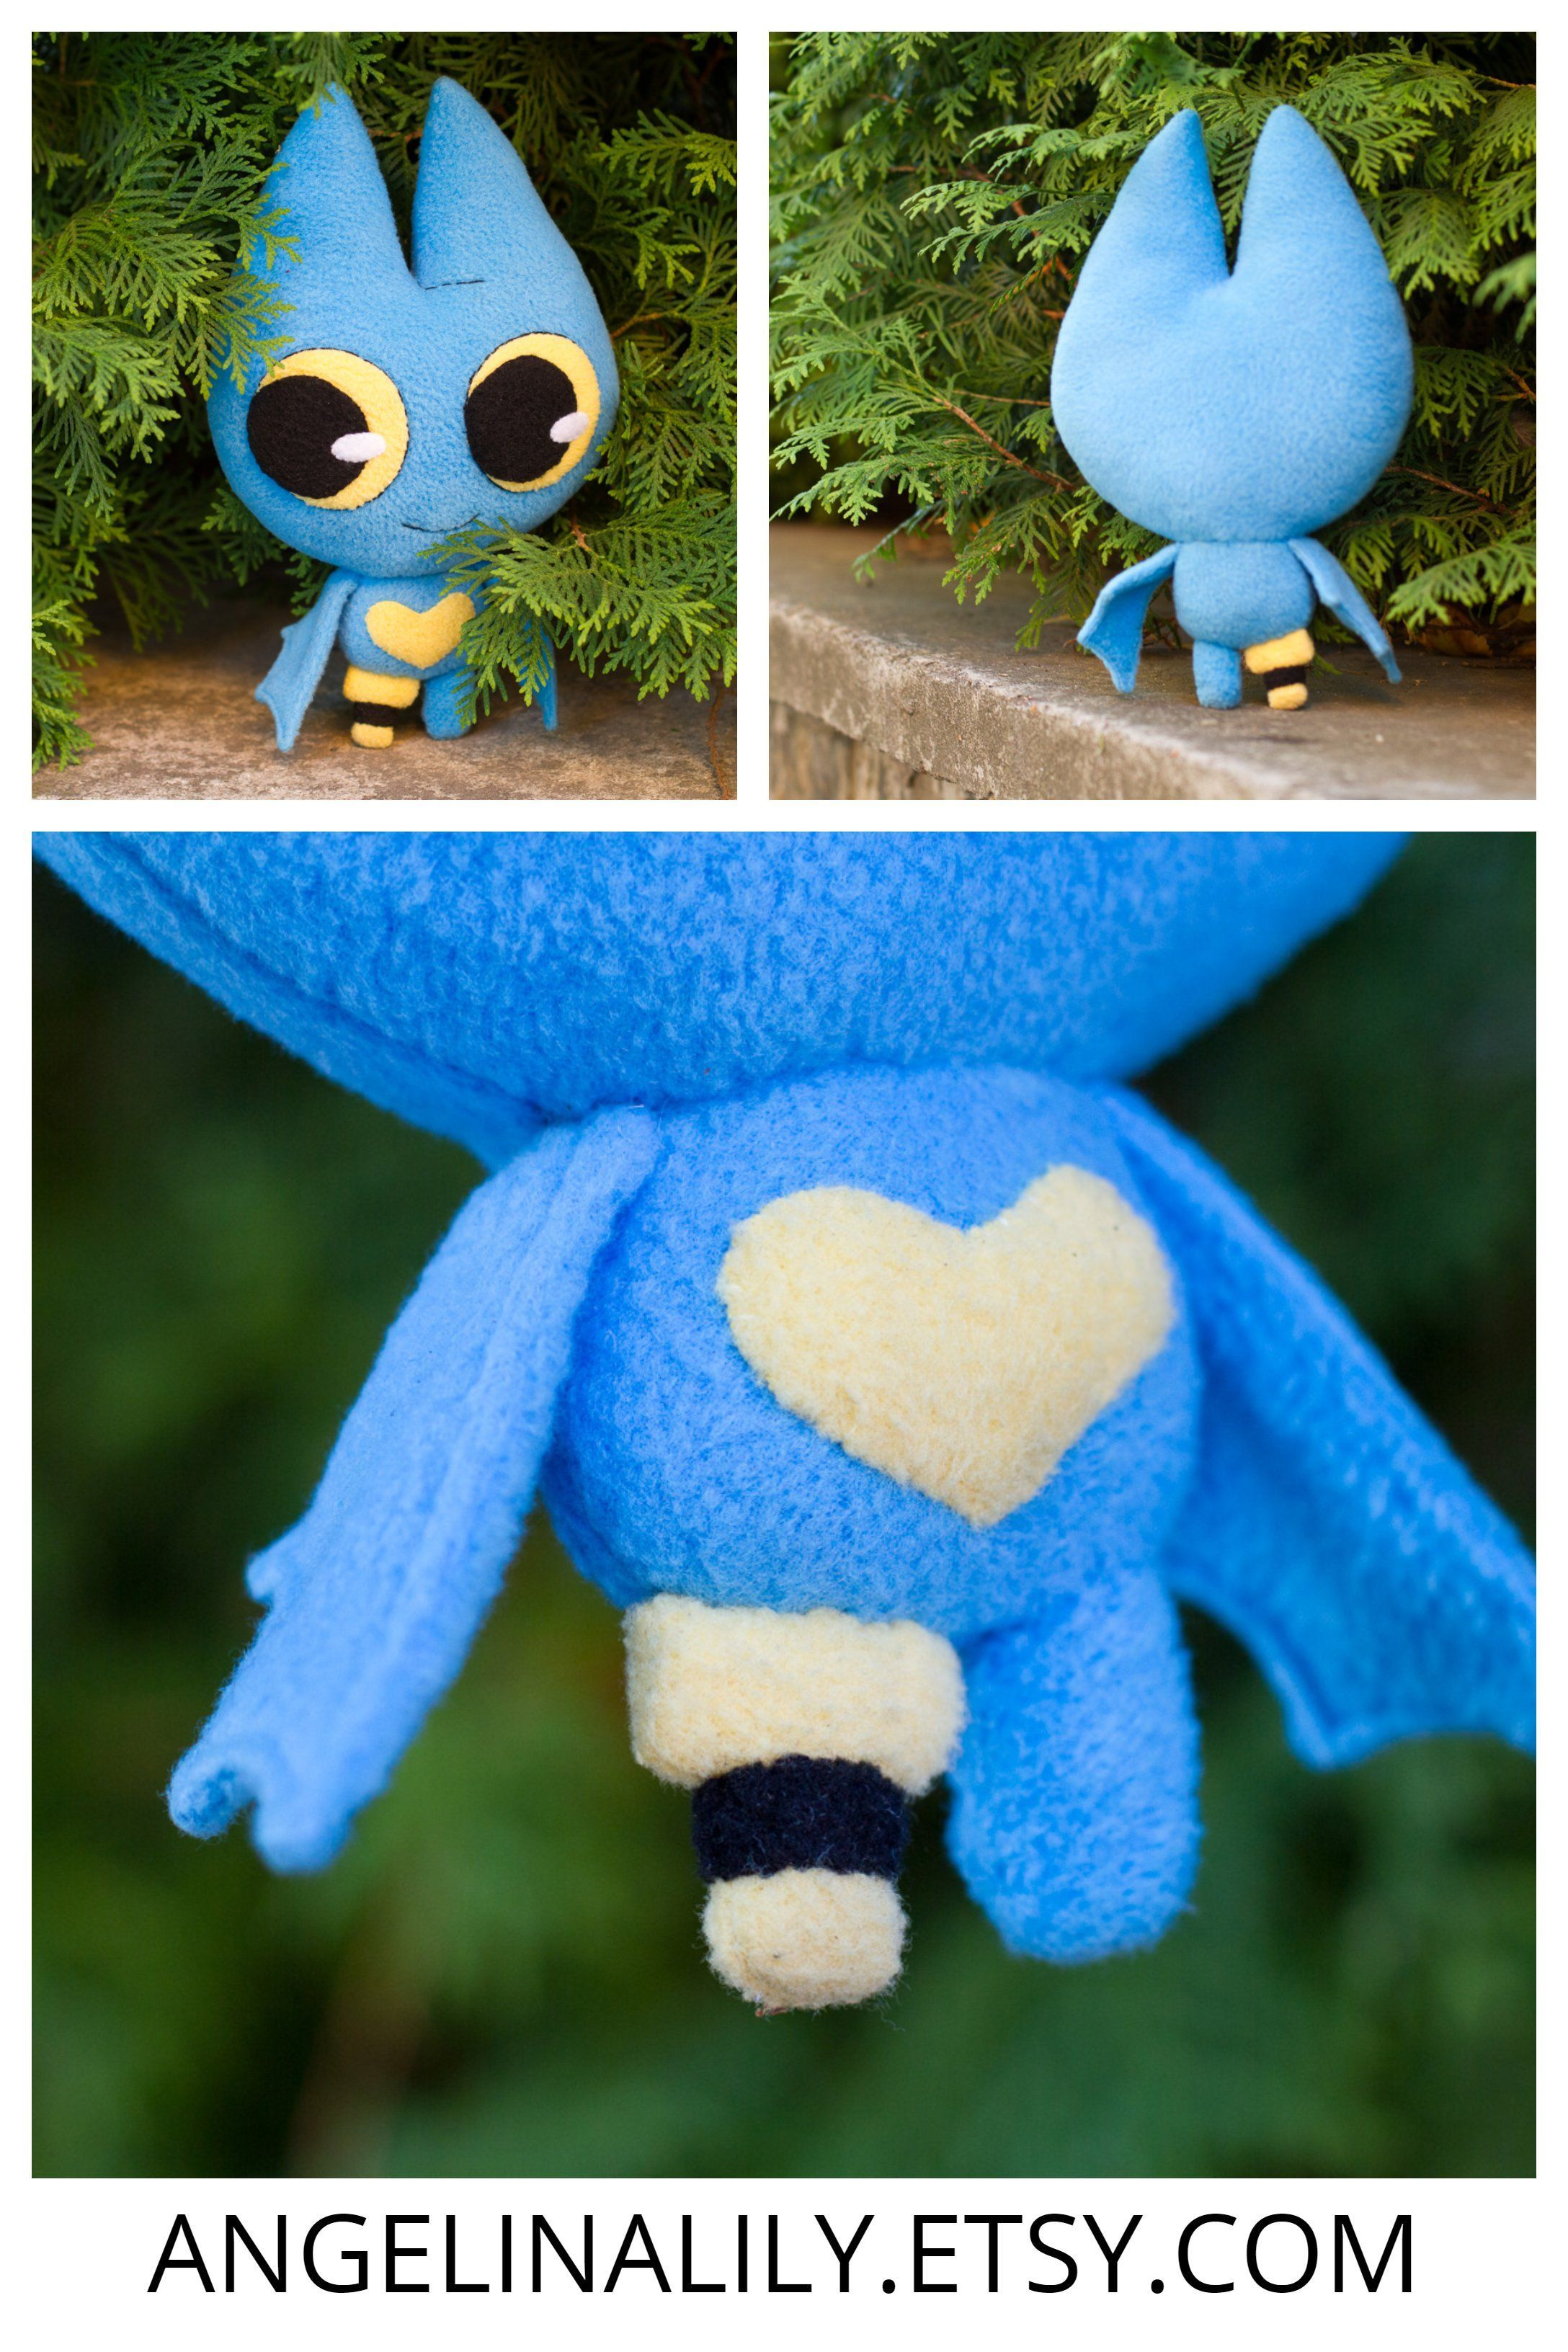 Adorabat Plush Mao Mao Heroes Of Pure Heart Toys Inspired Etsy In 2020 Handmade Soft Toys Handmade Plush Dolls Handmade Press shift question mark to access a list of keyboard shortcuts. adorabat plush mao mao heroes of pure